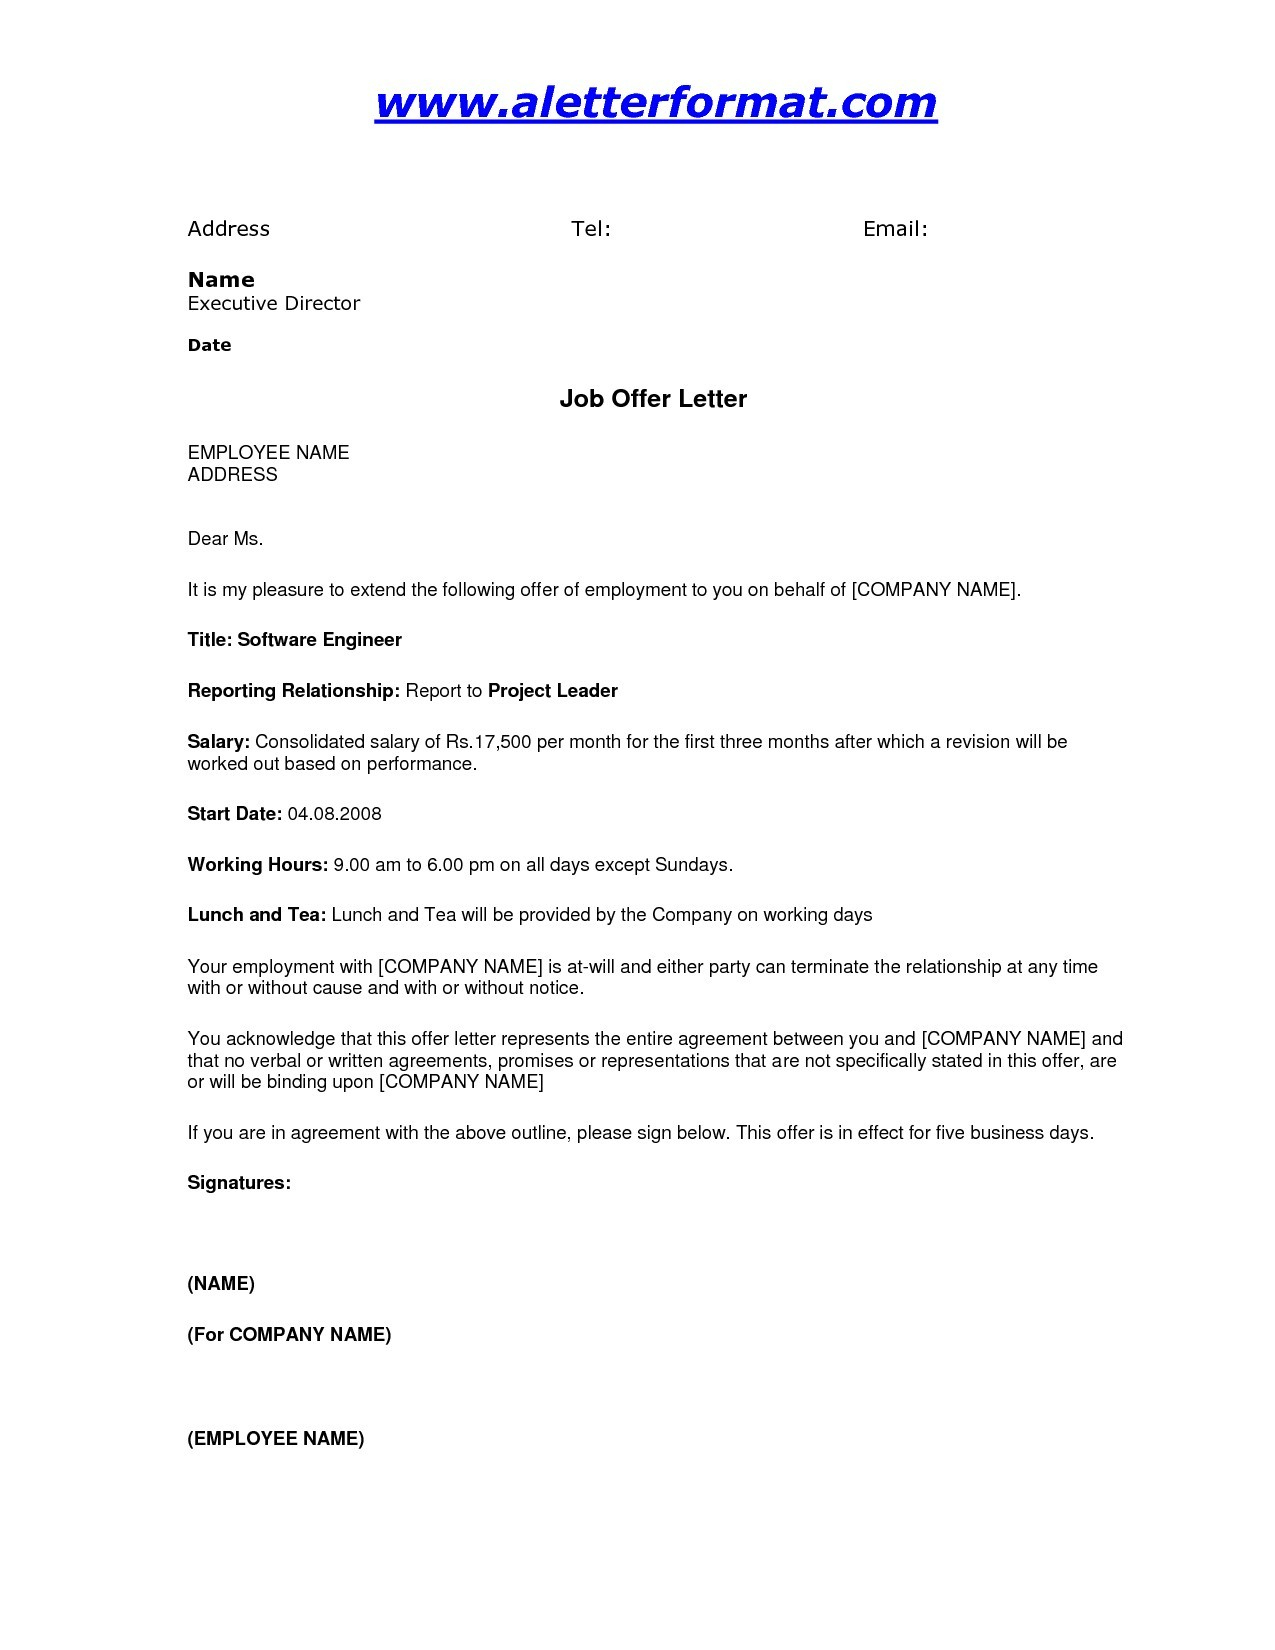 Job Offer Letter Template Doc Examples Letter Templates